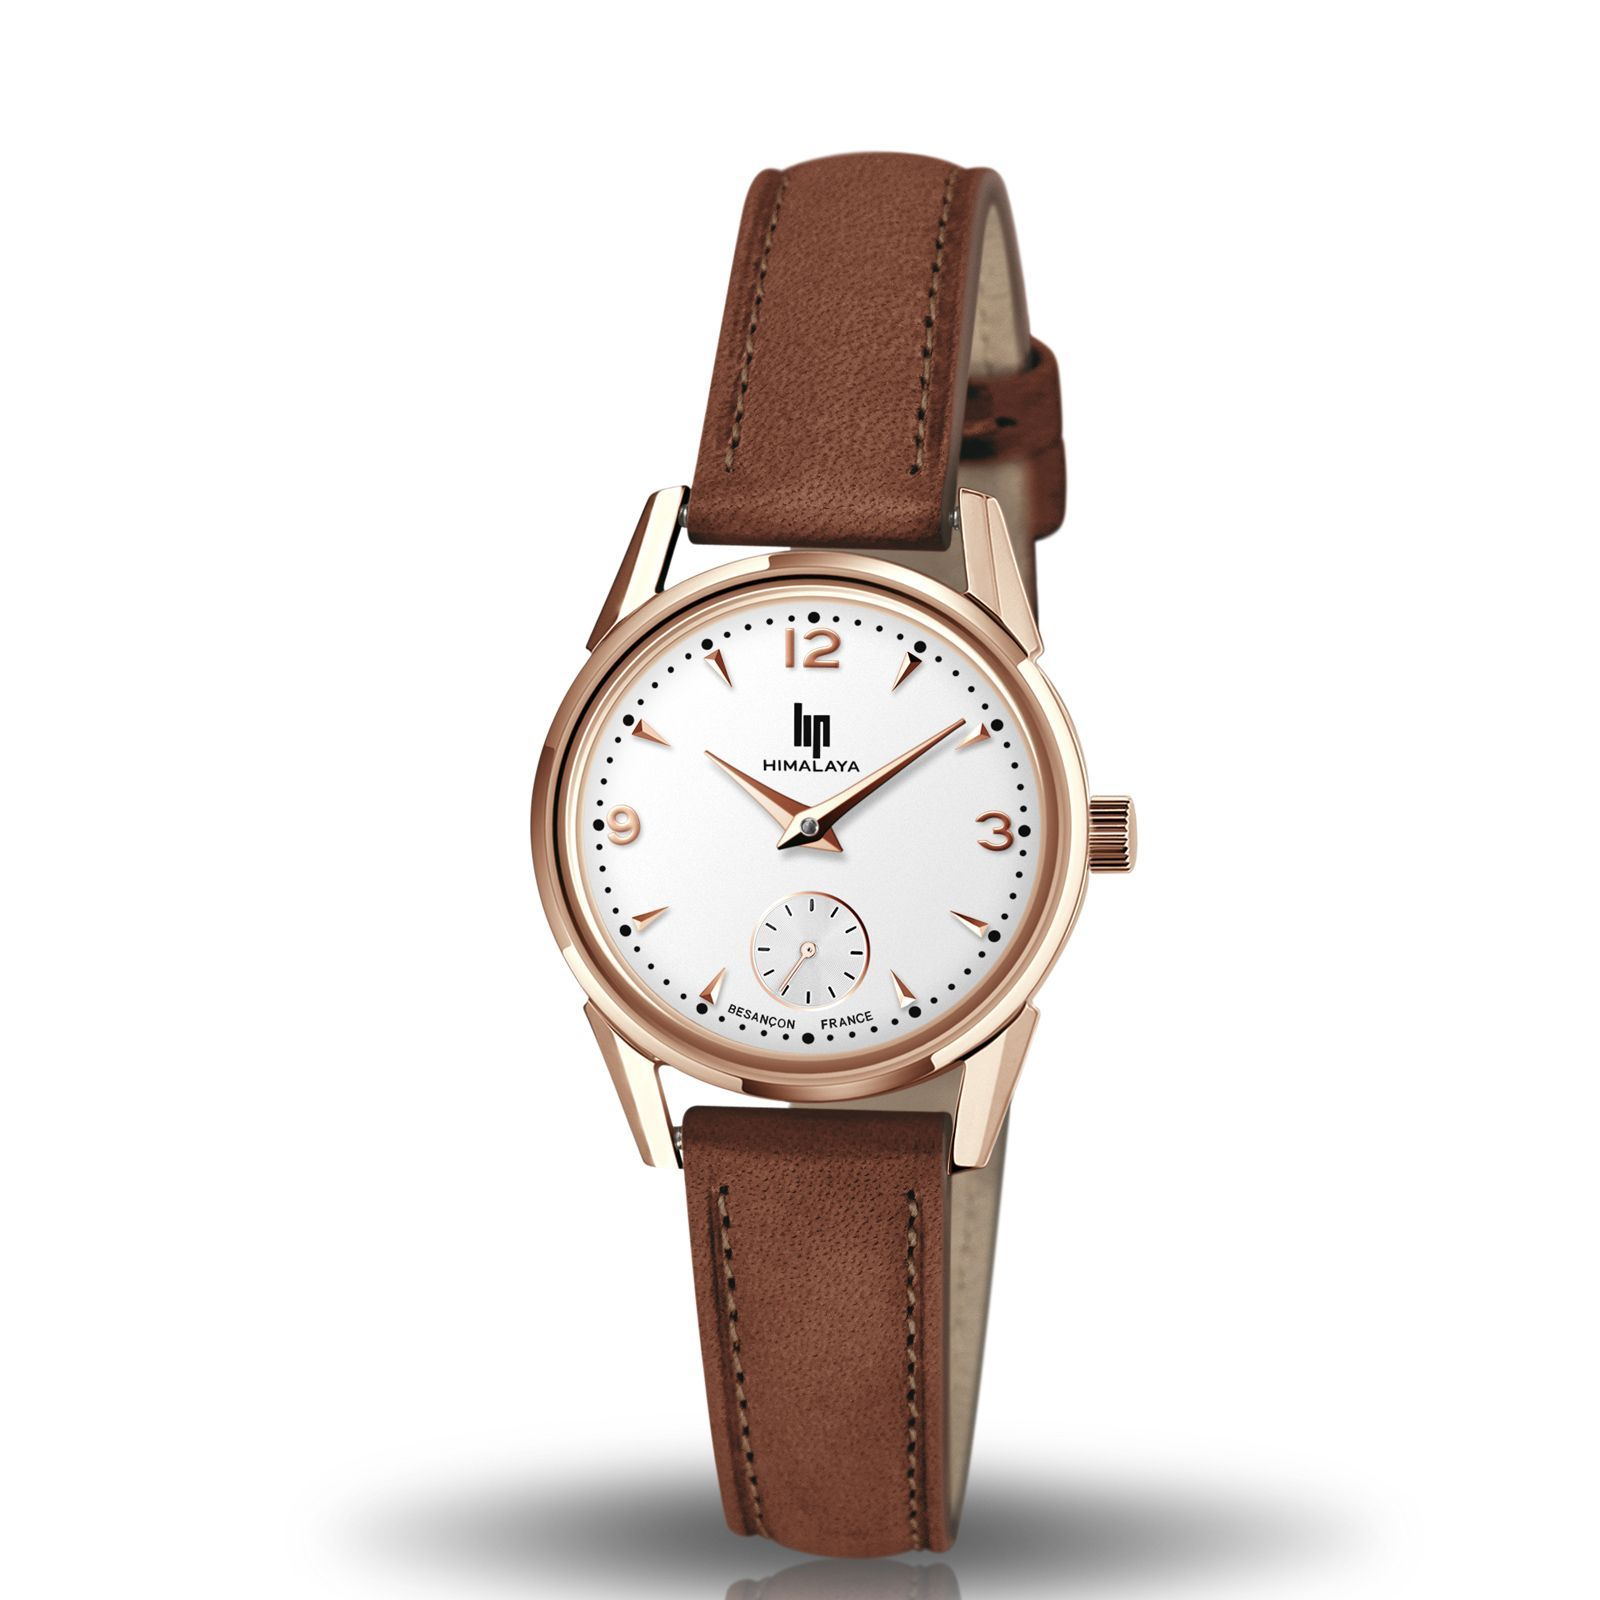 Montre Lip Himalaya 29mm classic 671603